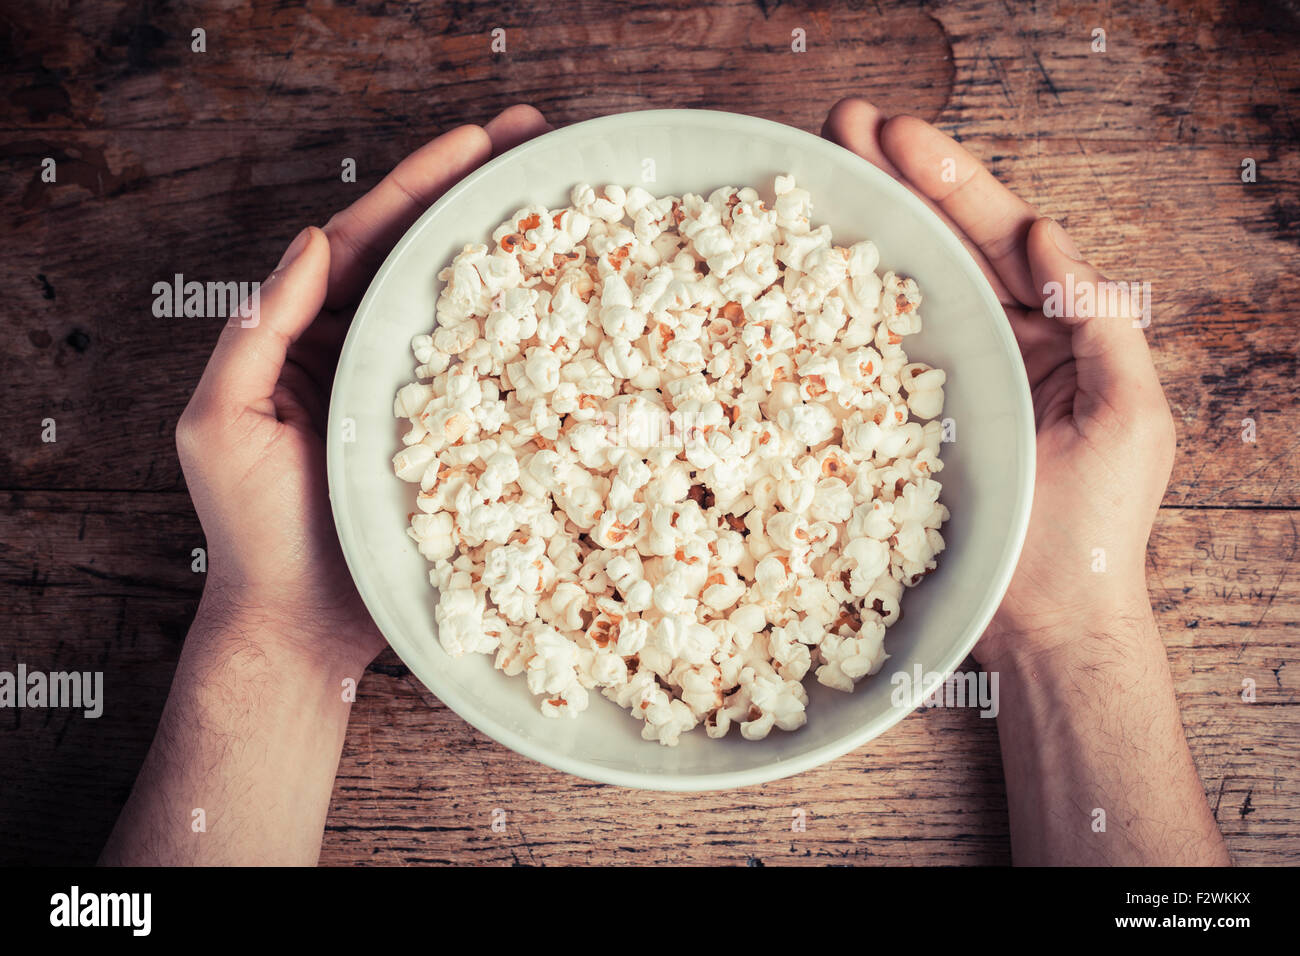 Hands holding a large bowl of popcorn on a wooden table - Stock Image